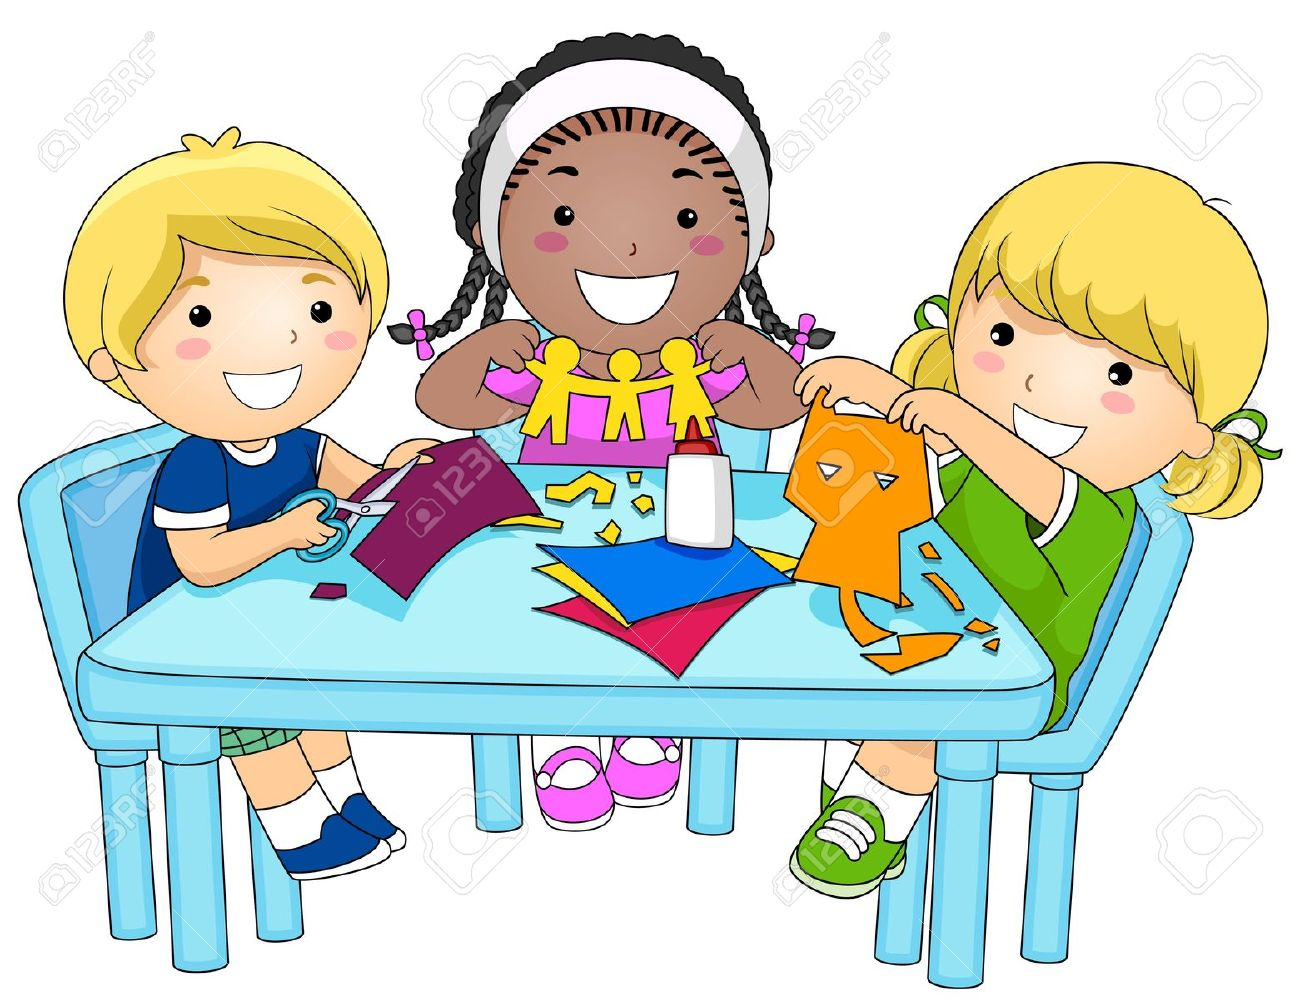 Group Activity Clipart